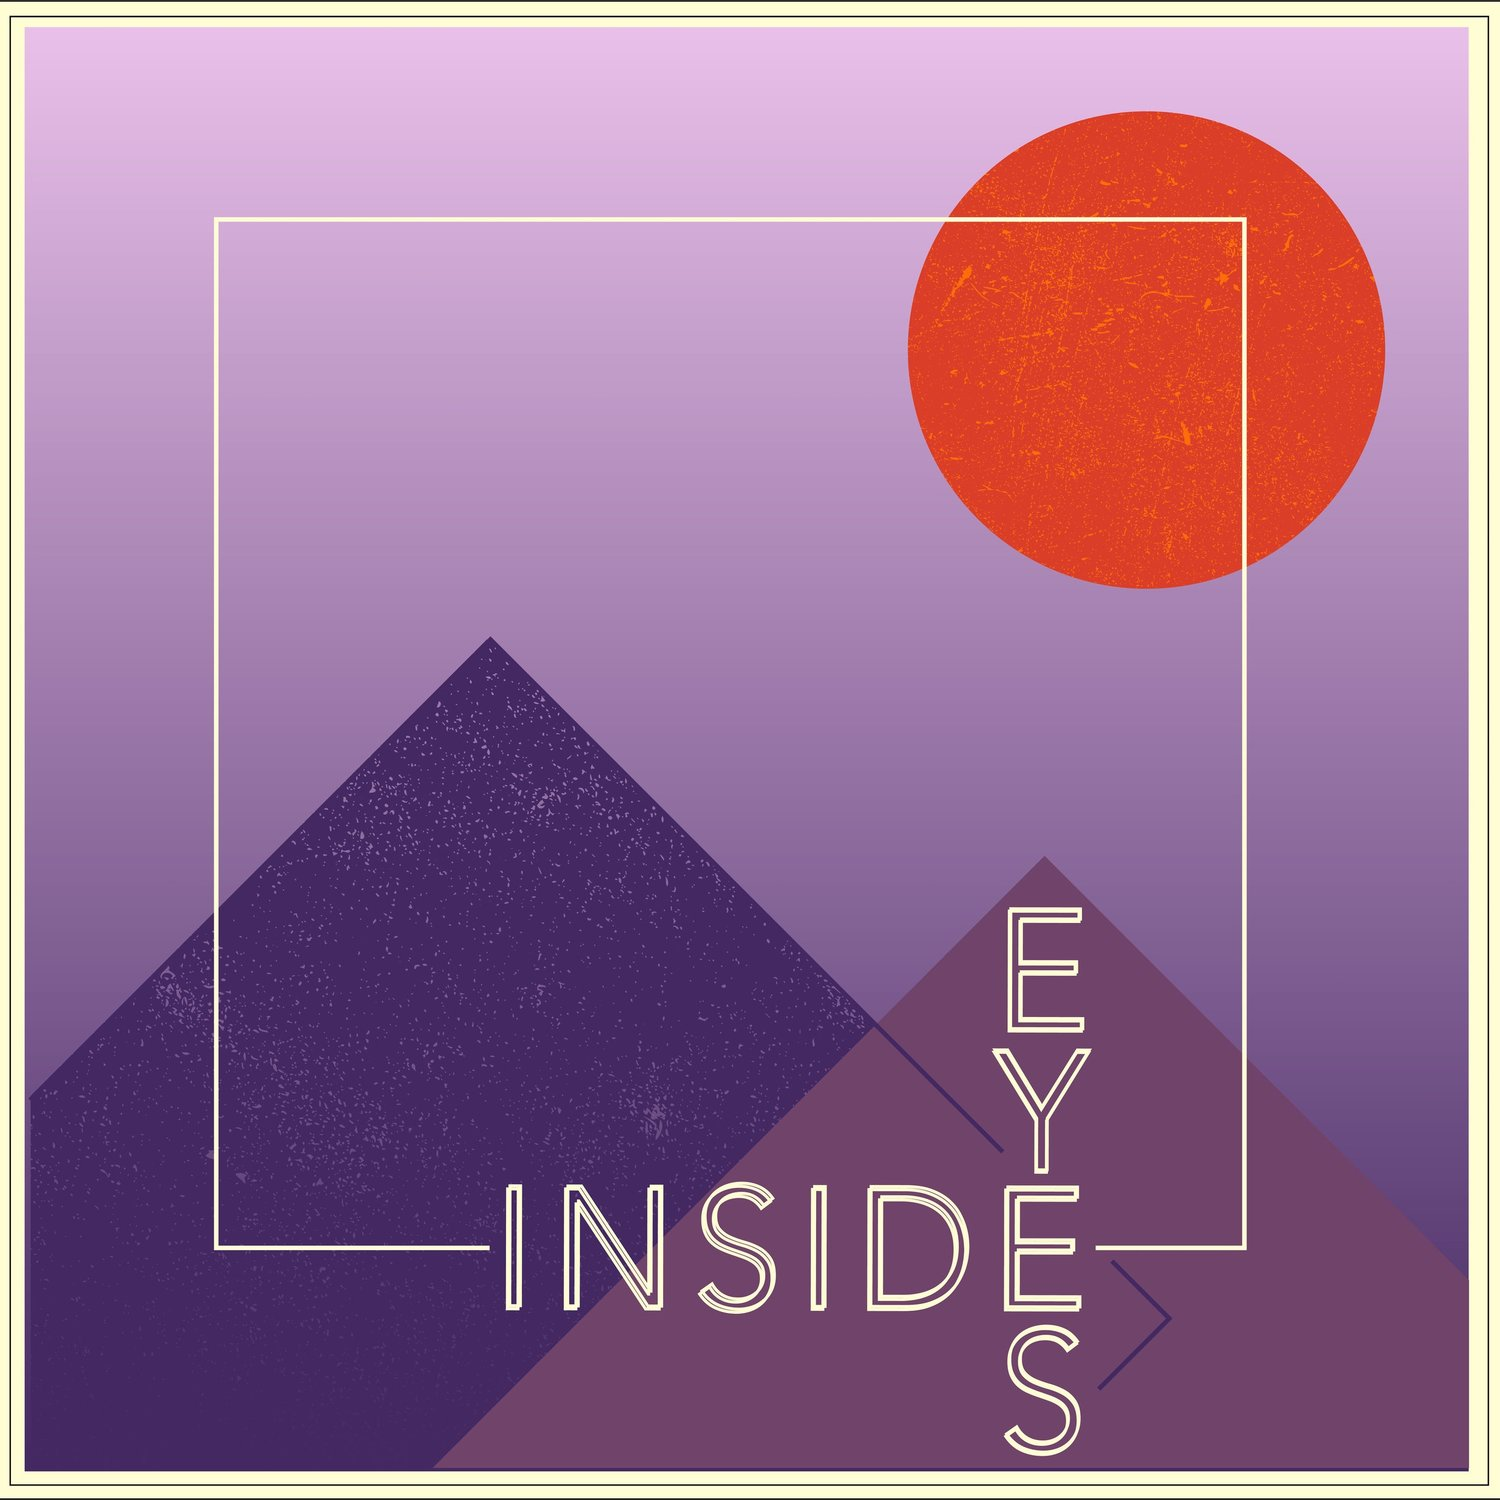 Inside Eyes Podcast - Healing Sexual Abuse & Trauma with